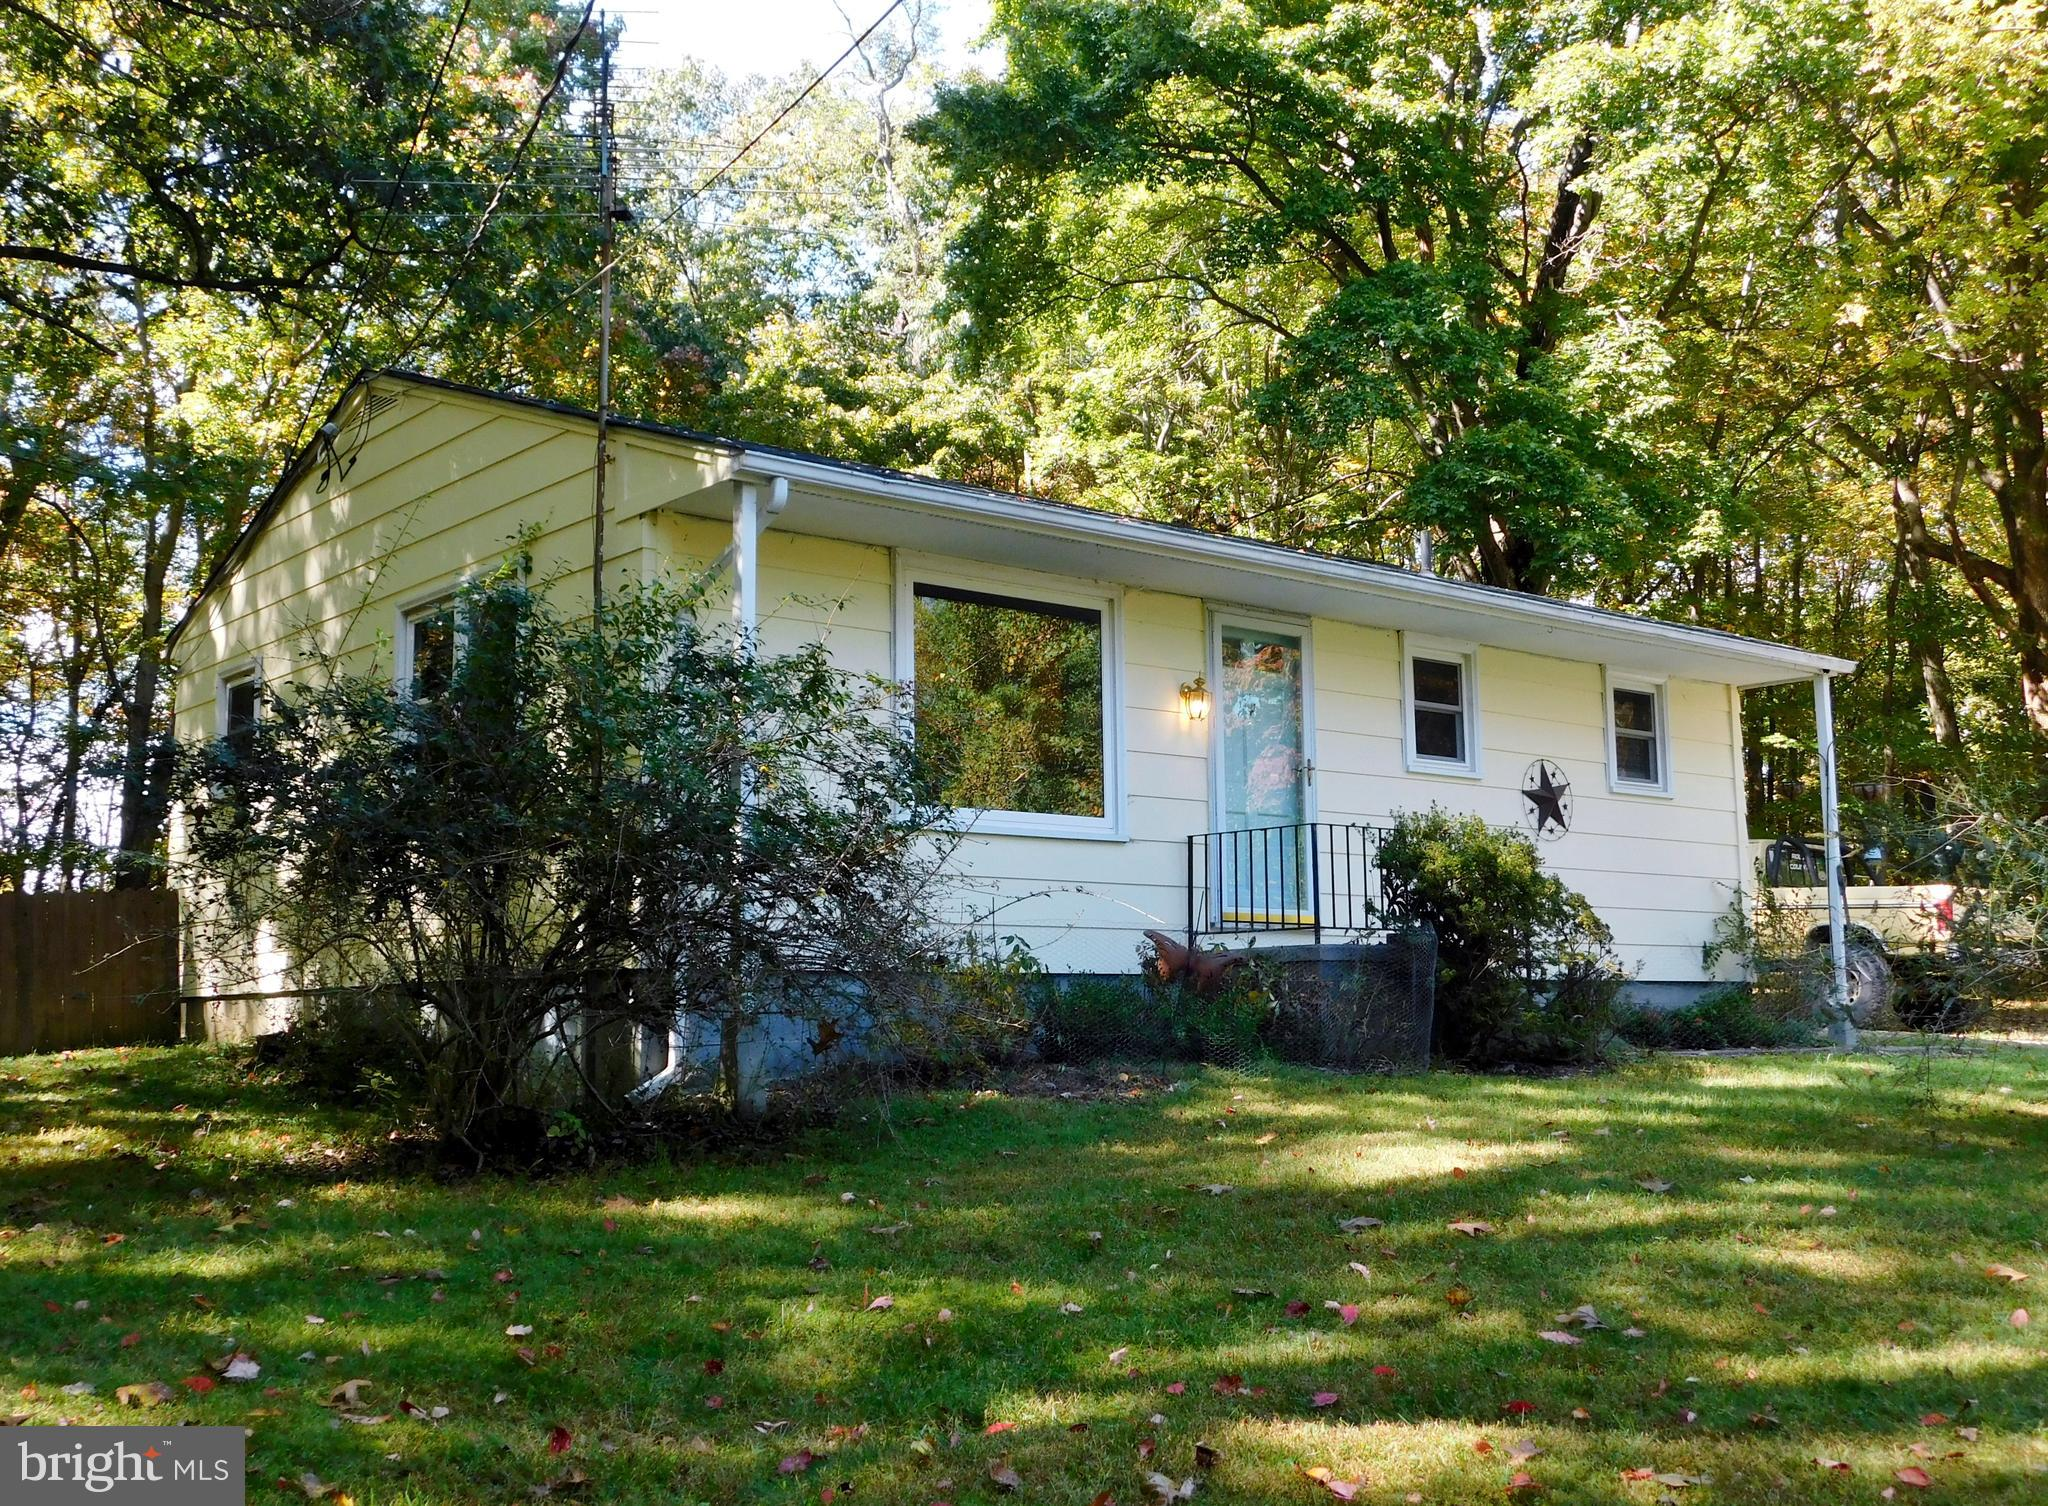 Nestled amongst beautiful woodland in The Blue Ridge Mountains, we've just listed this adorable coun